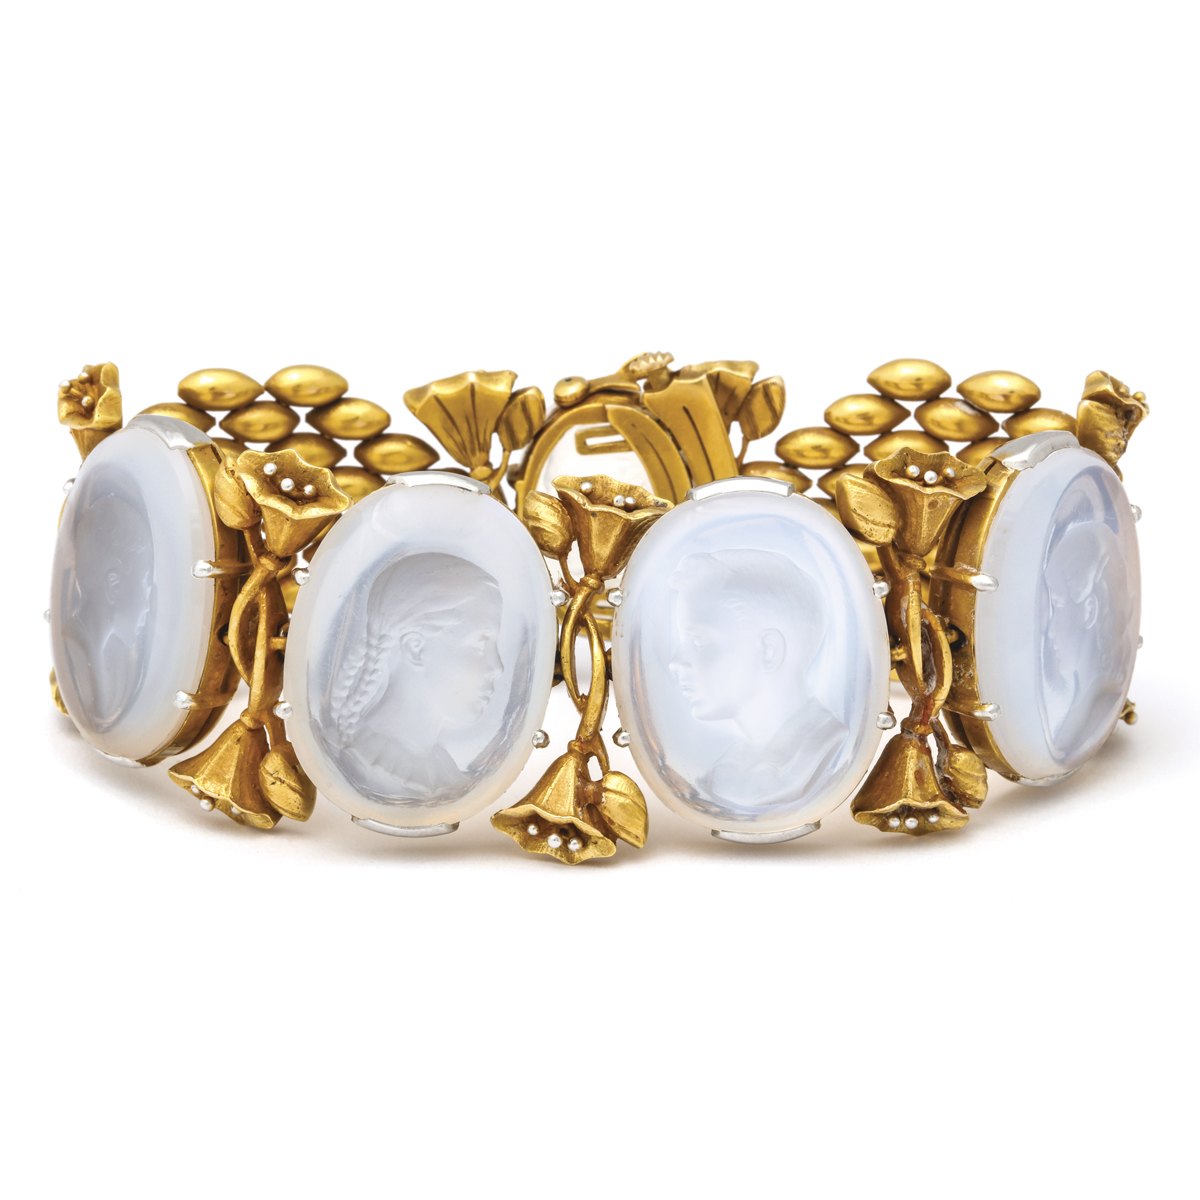 closed, Gold and Moonstone Intaglio Bracelet